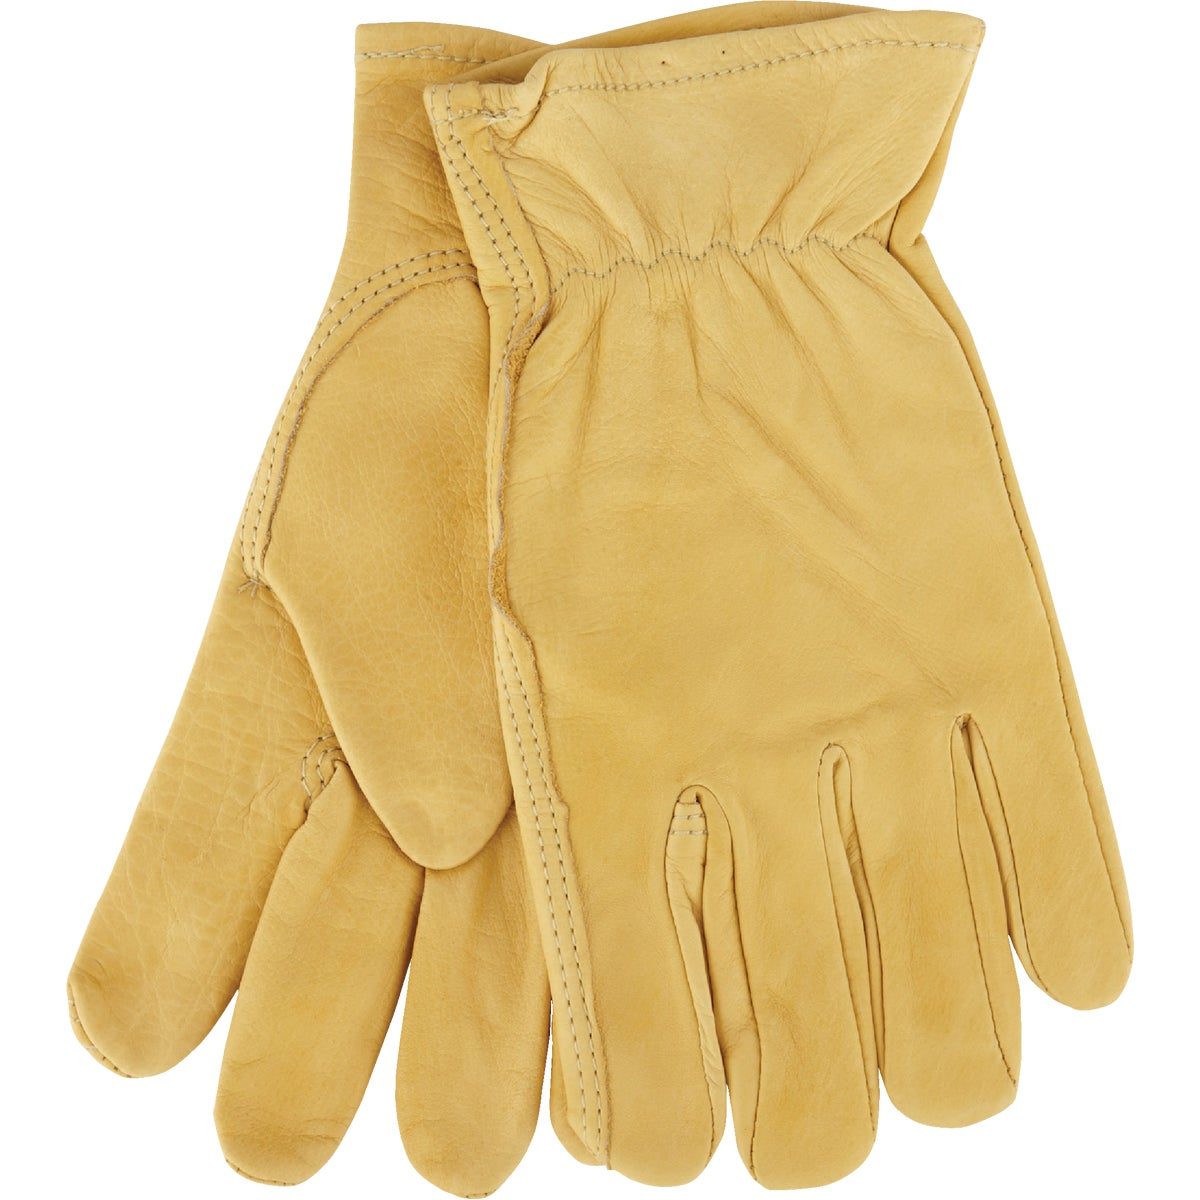 XXL COWHIDE GRAIN GLOVE